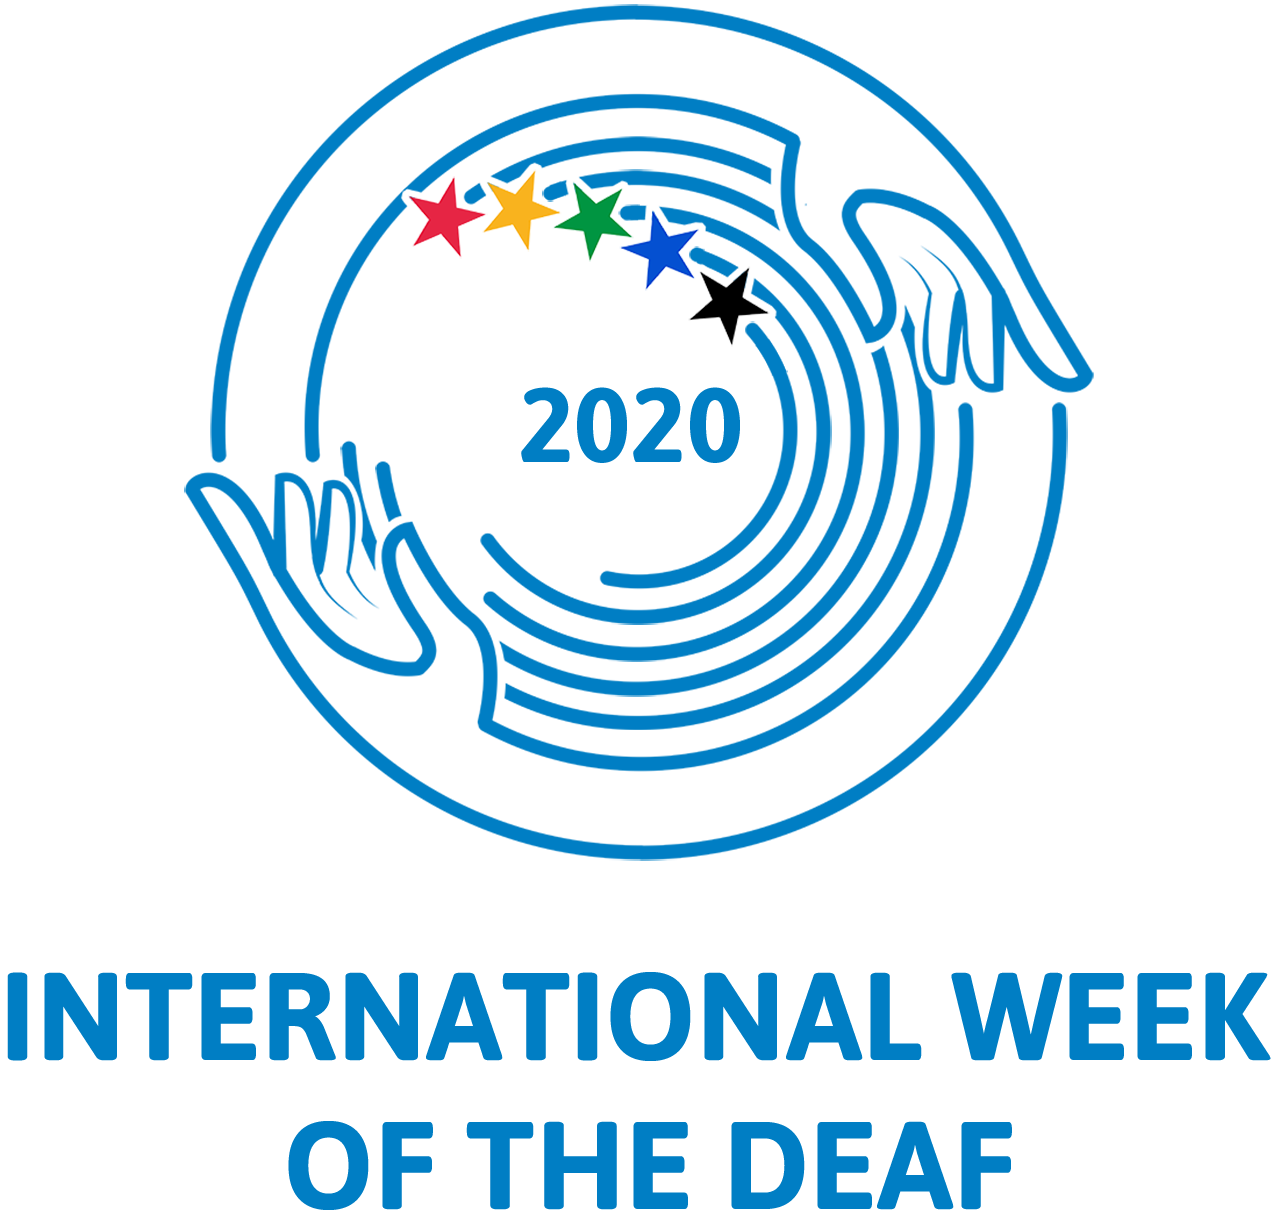 Four Ways to Commemorate International Week of the Deaf